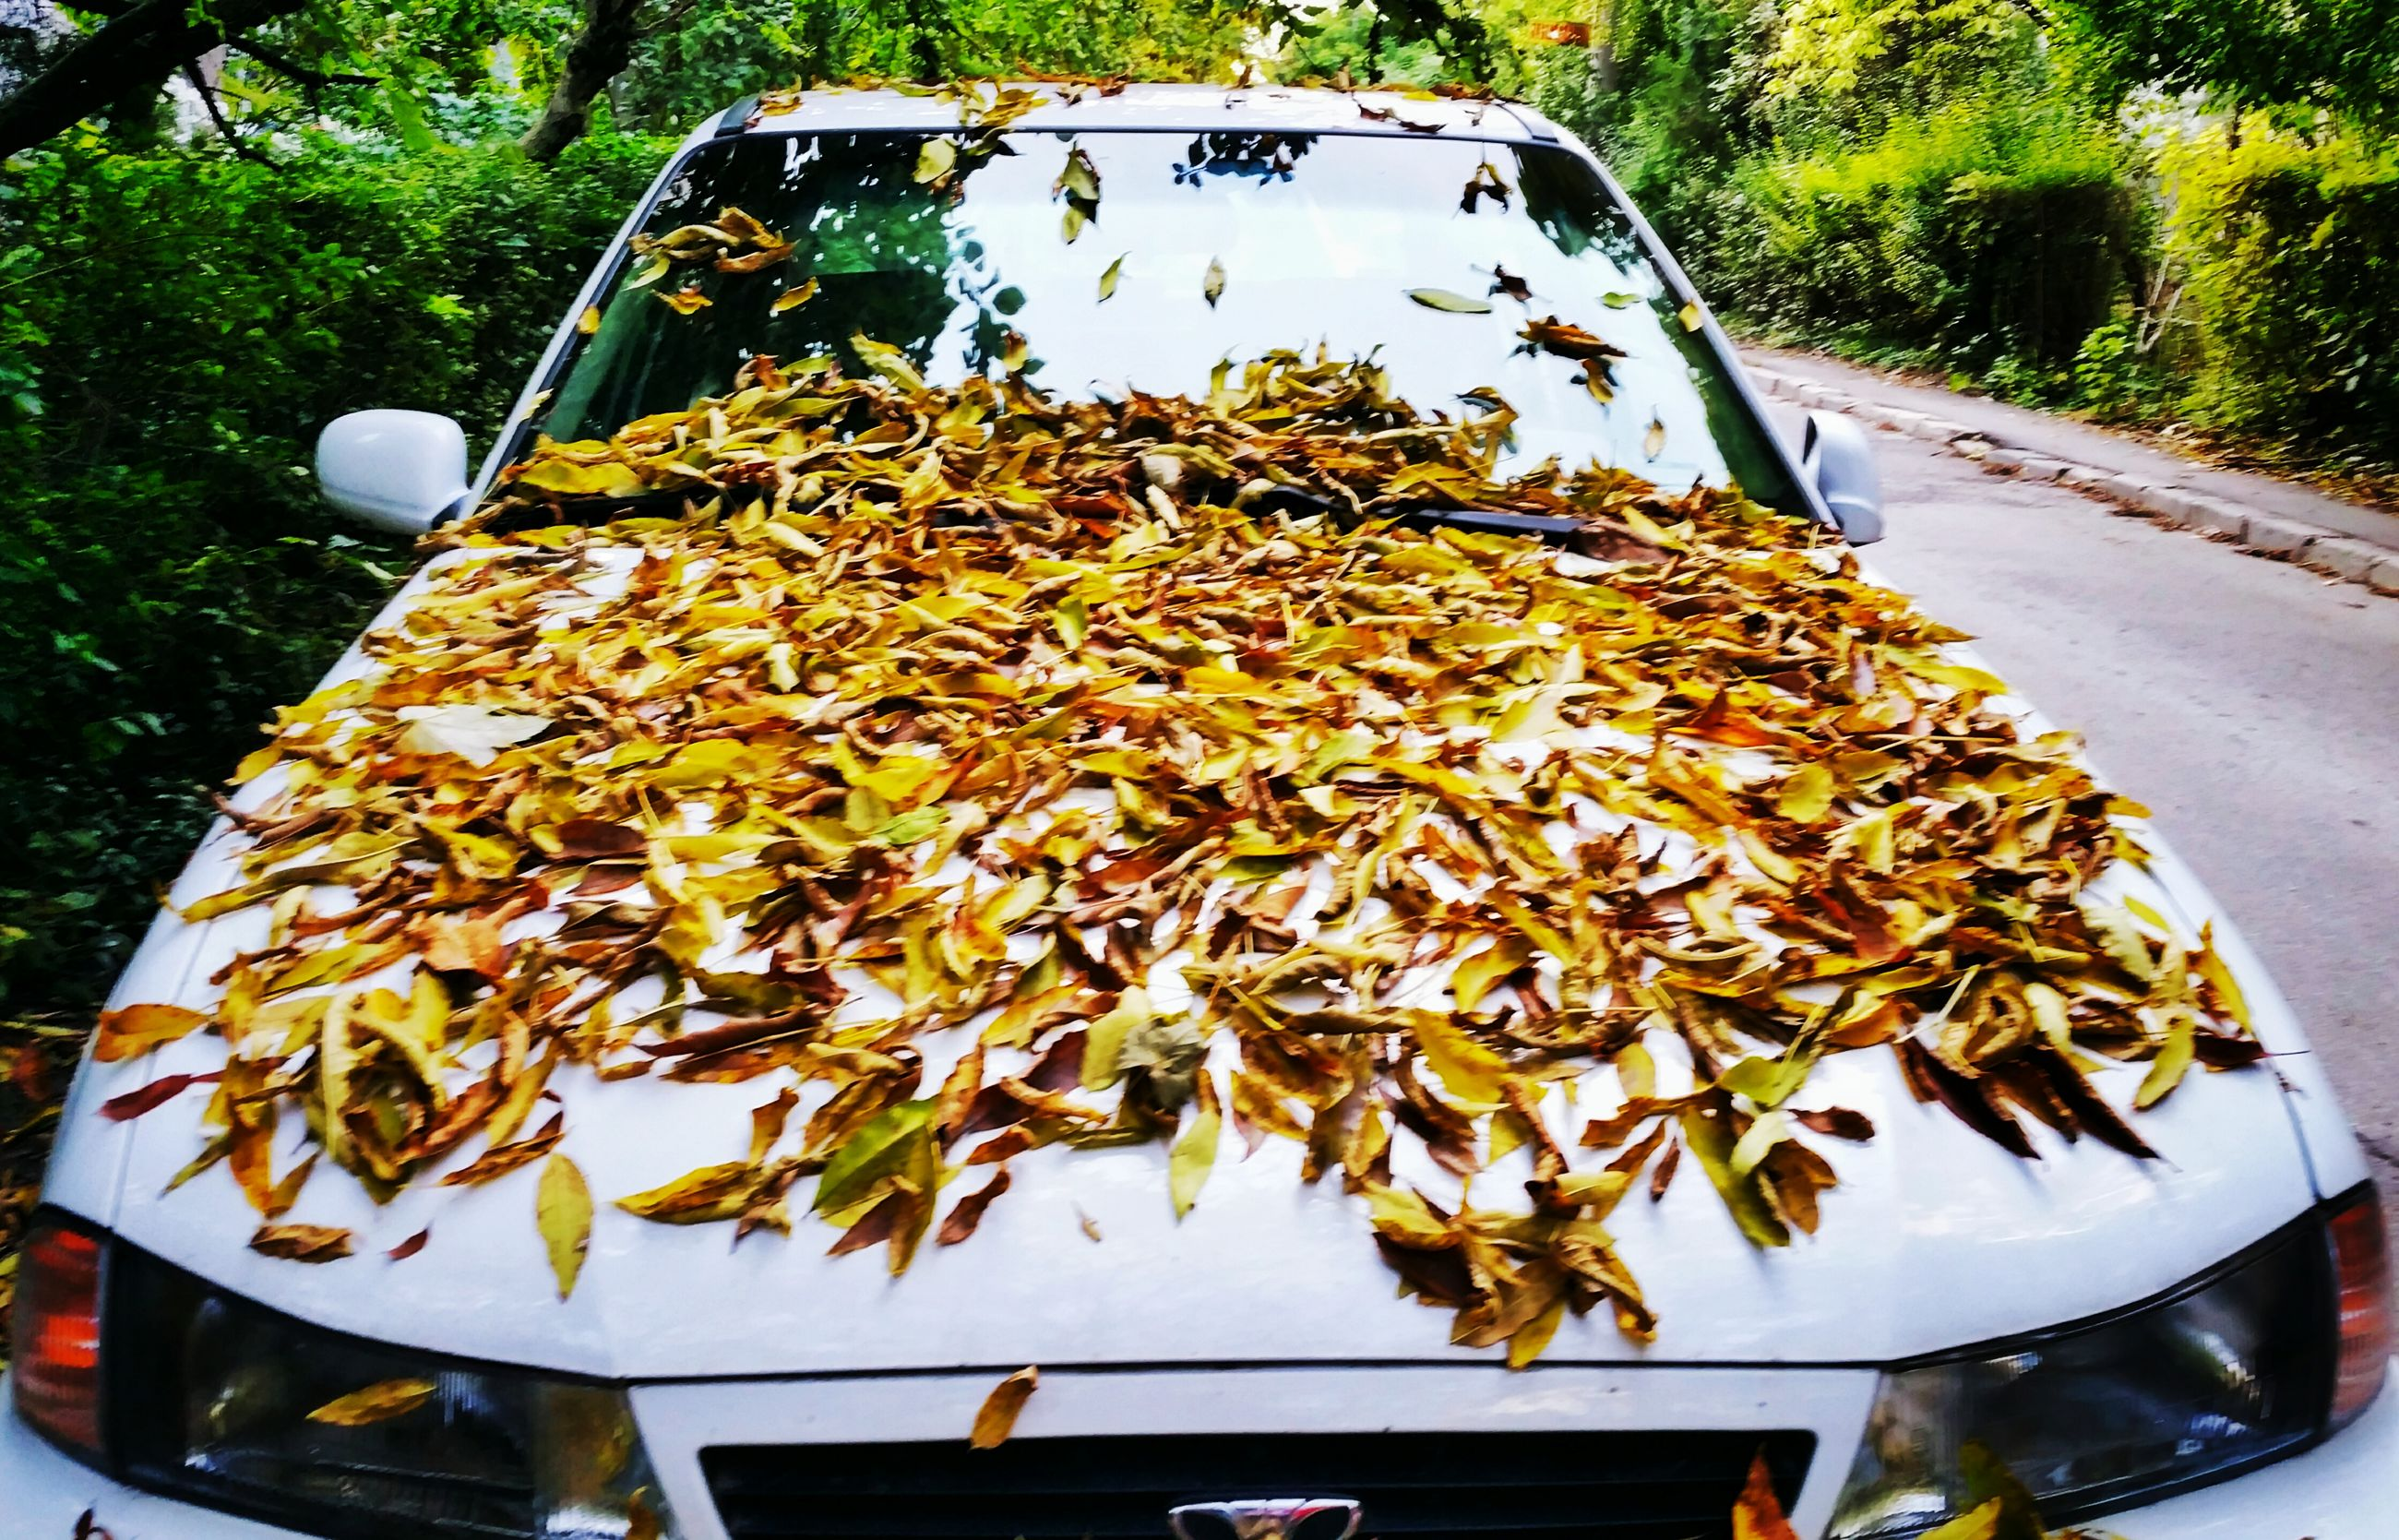 autumn, close-up, freshness, day, leaves, collection, surface level, no people, the way forward, beauty in nature